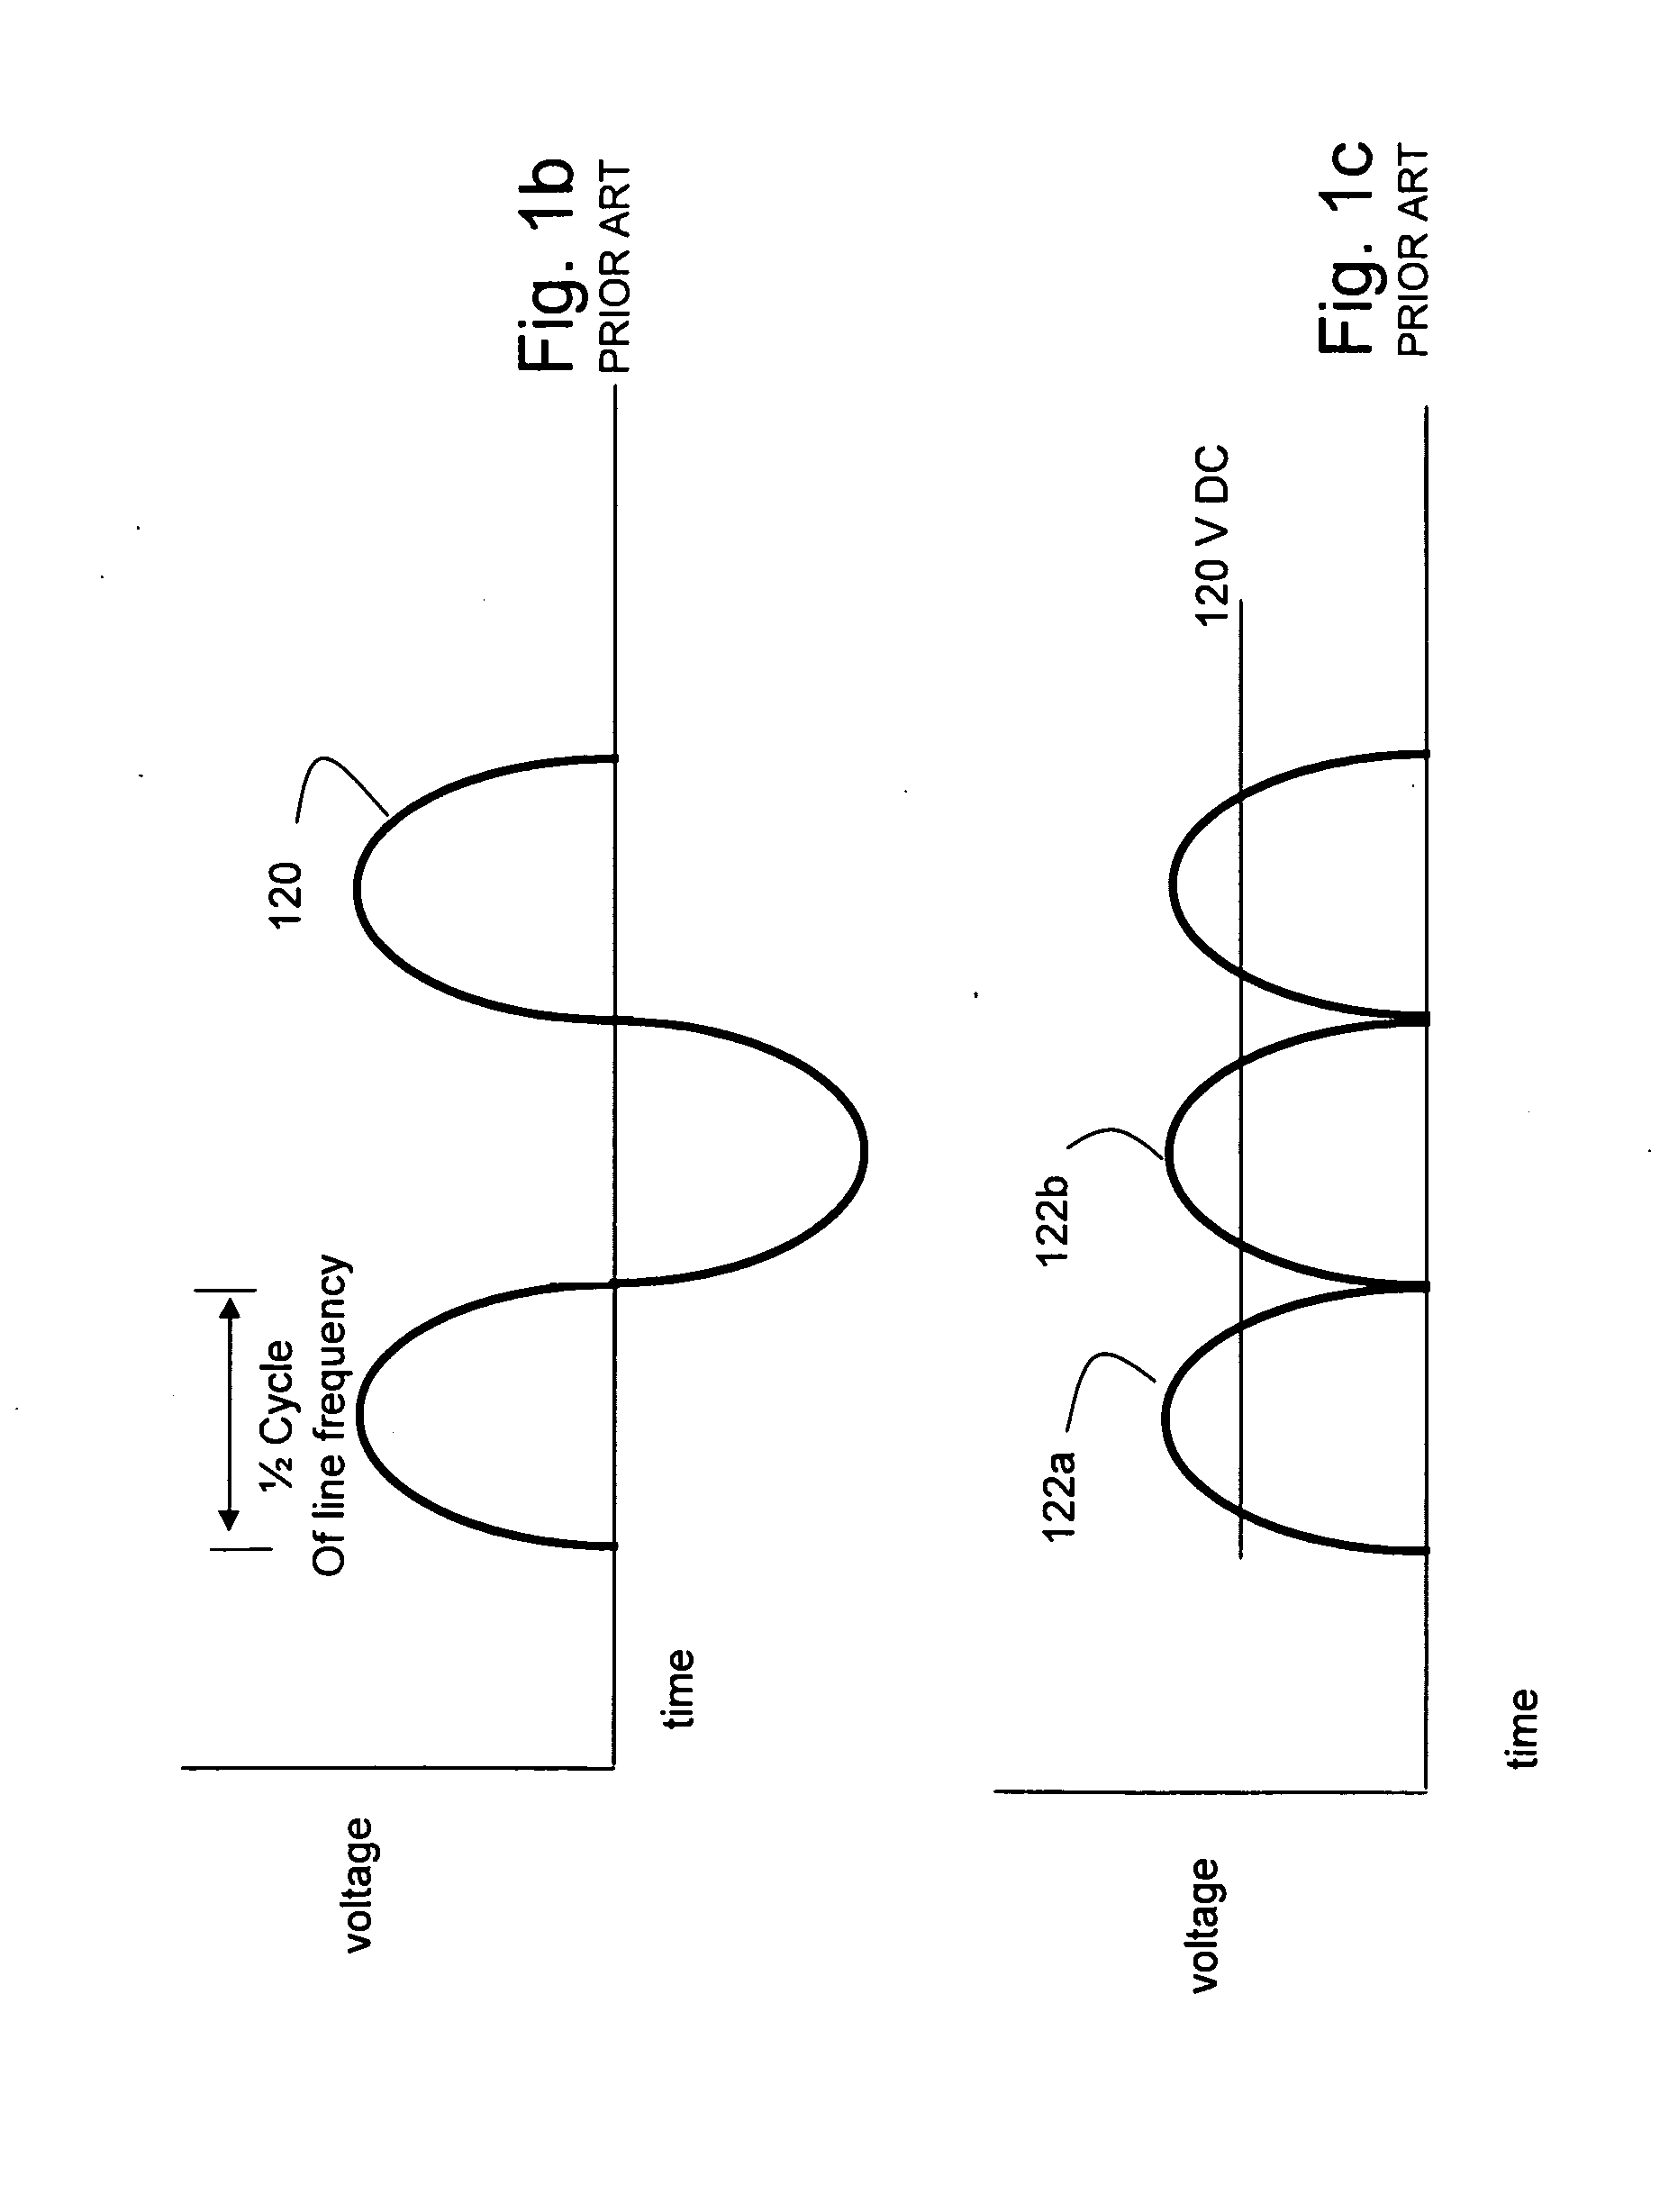 Patent Us20100225239 Methods And Apparatus For A High Power Factor Lc Circuit Aka Tank Or Resonant Drawing